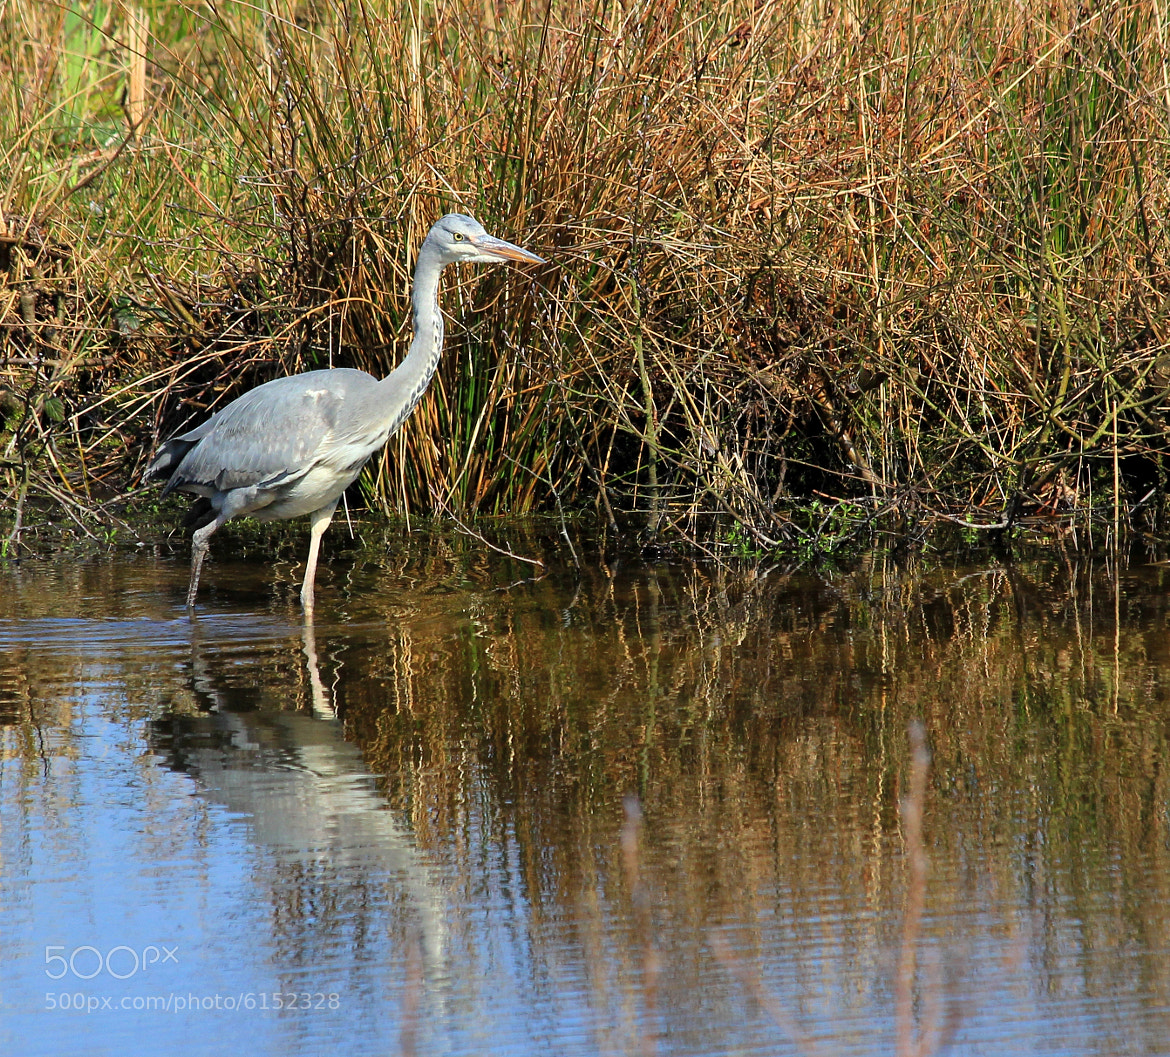 Photograph Hunting Grey Heron by Deborah Anderson-Marland on 500px